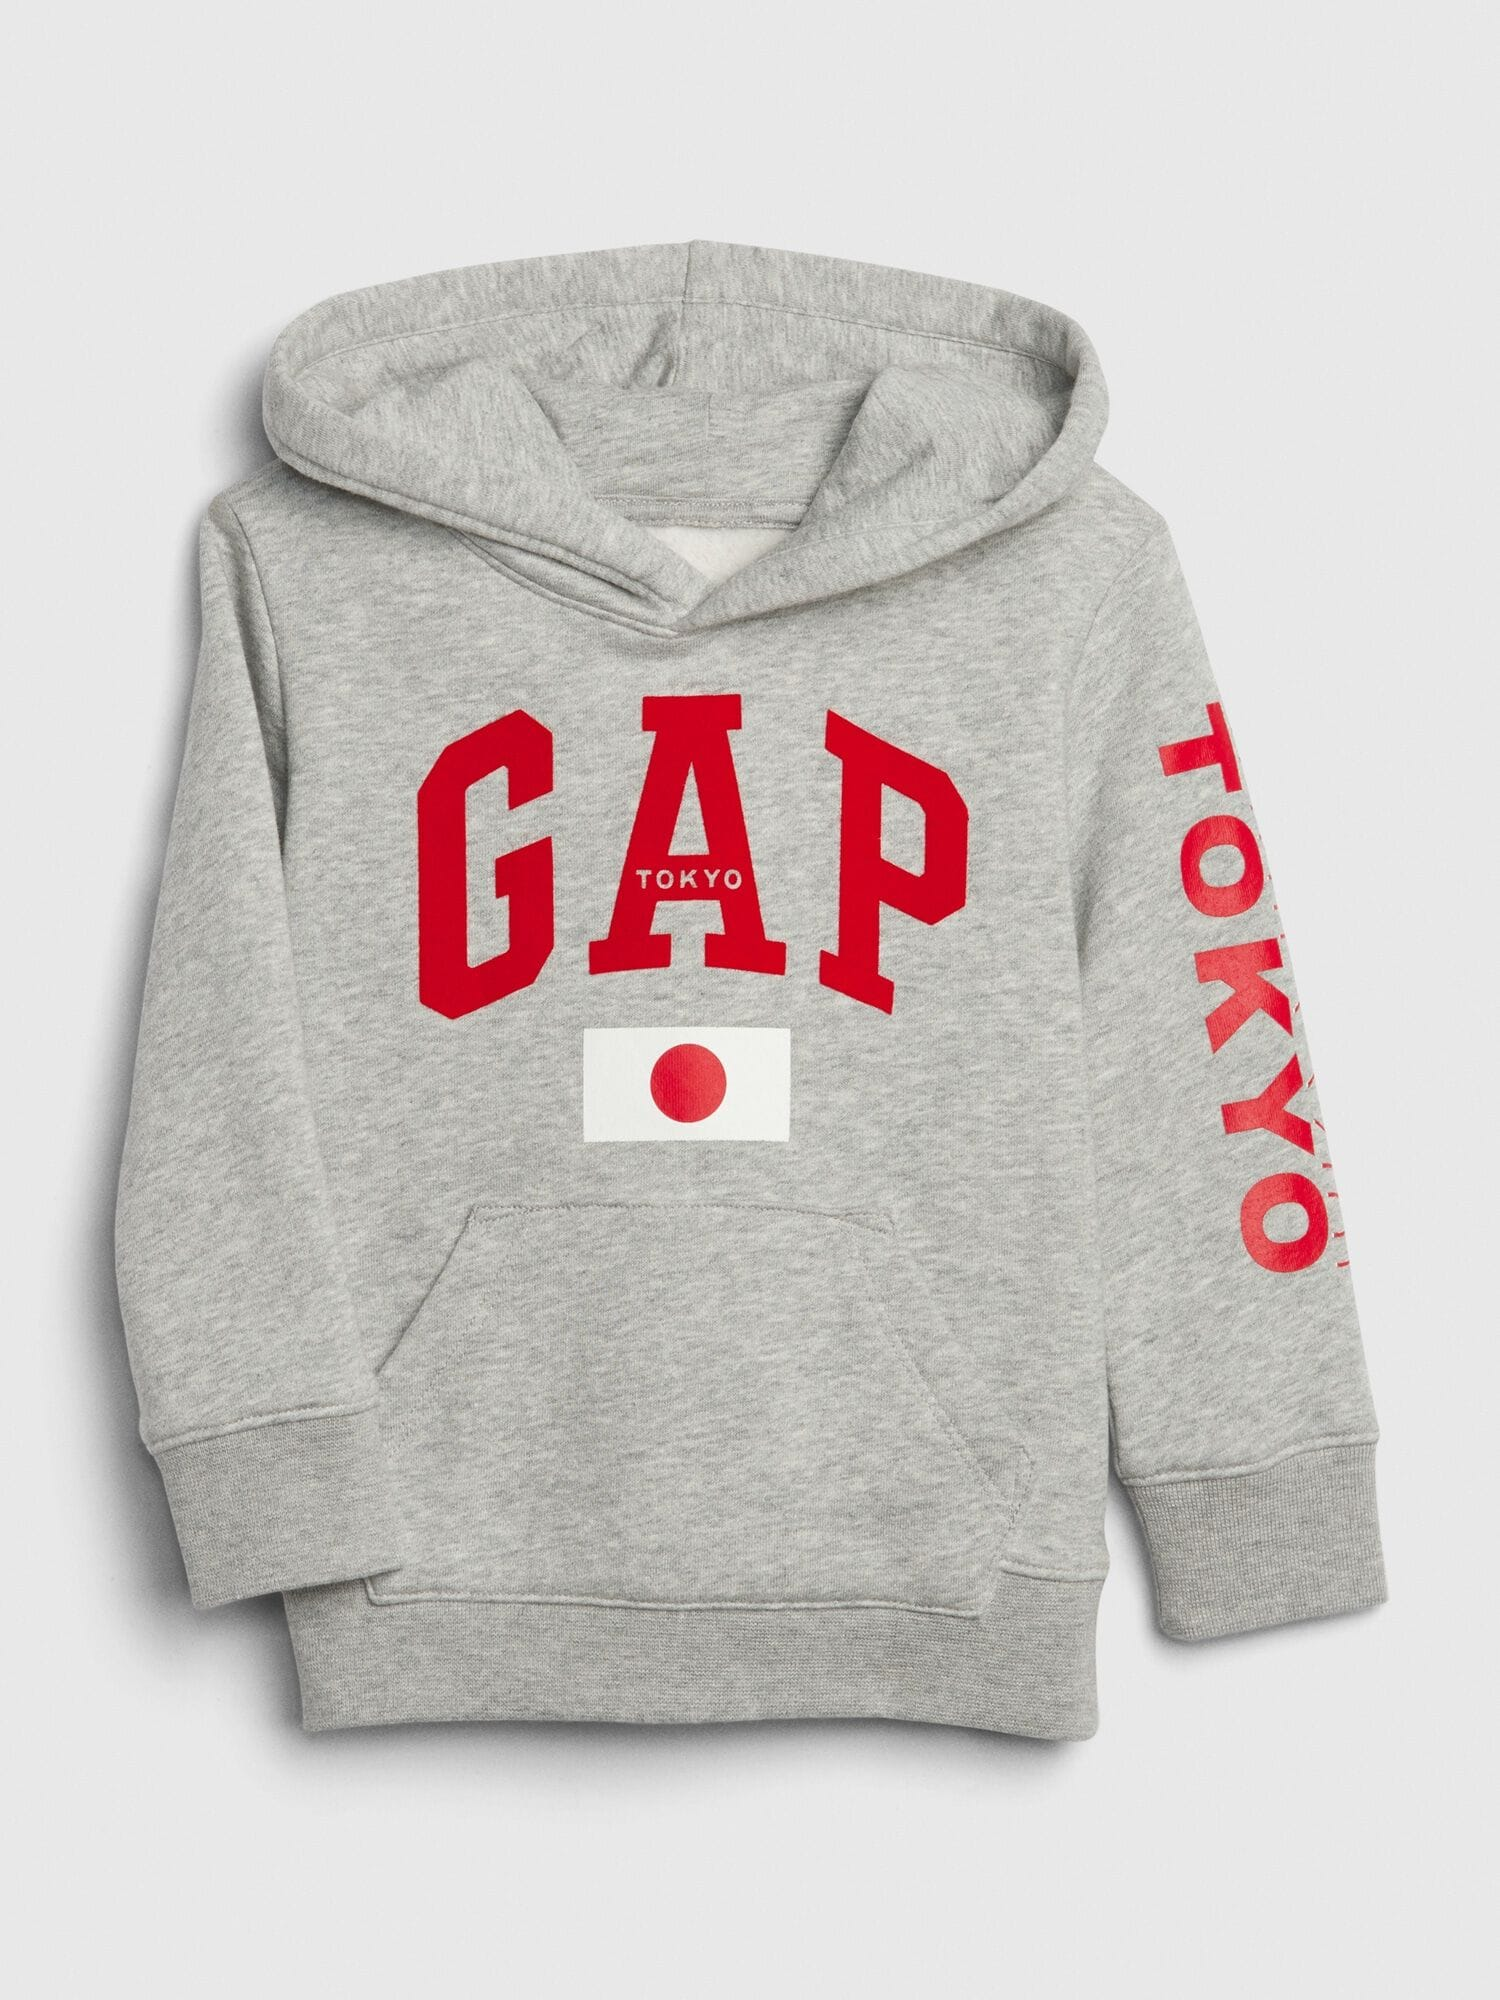 NEW GAP STRIPED LINED RED LOGO HOODIE SIZE 0-3-6-12-18-24M